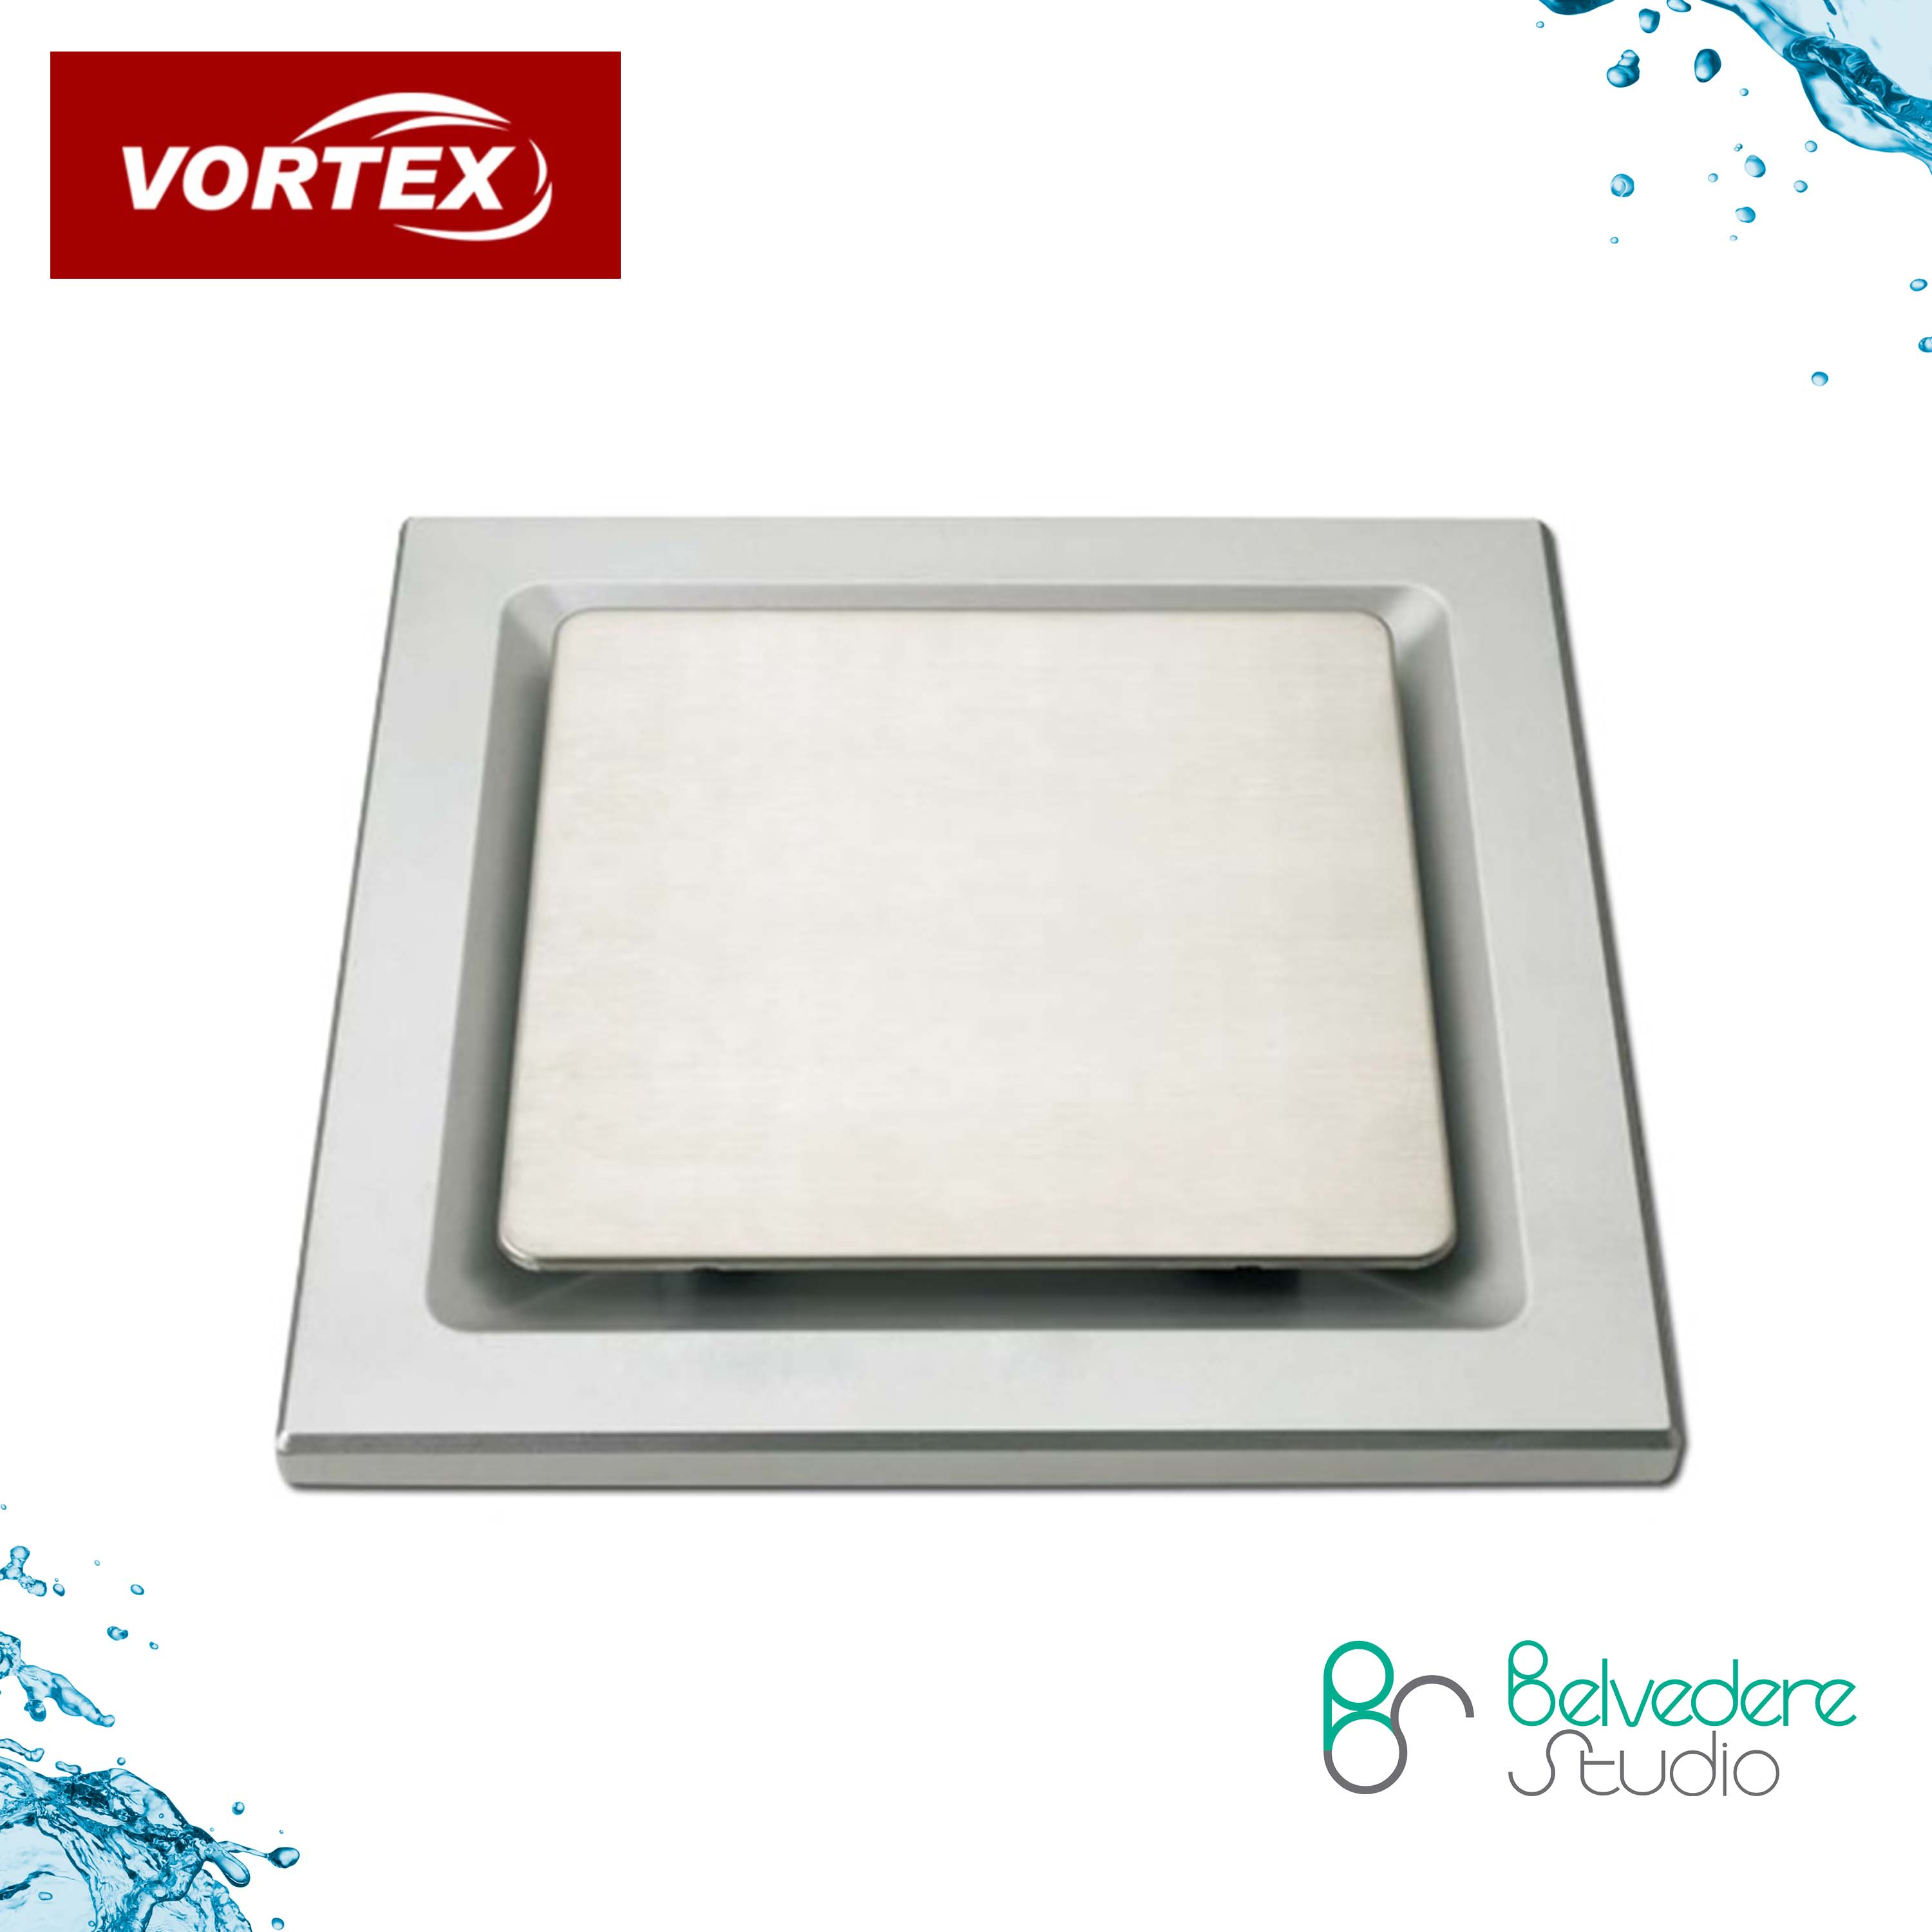 vortex silver ducted exhaust fan